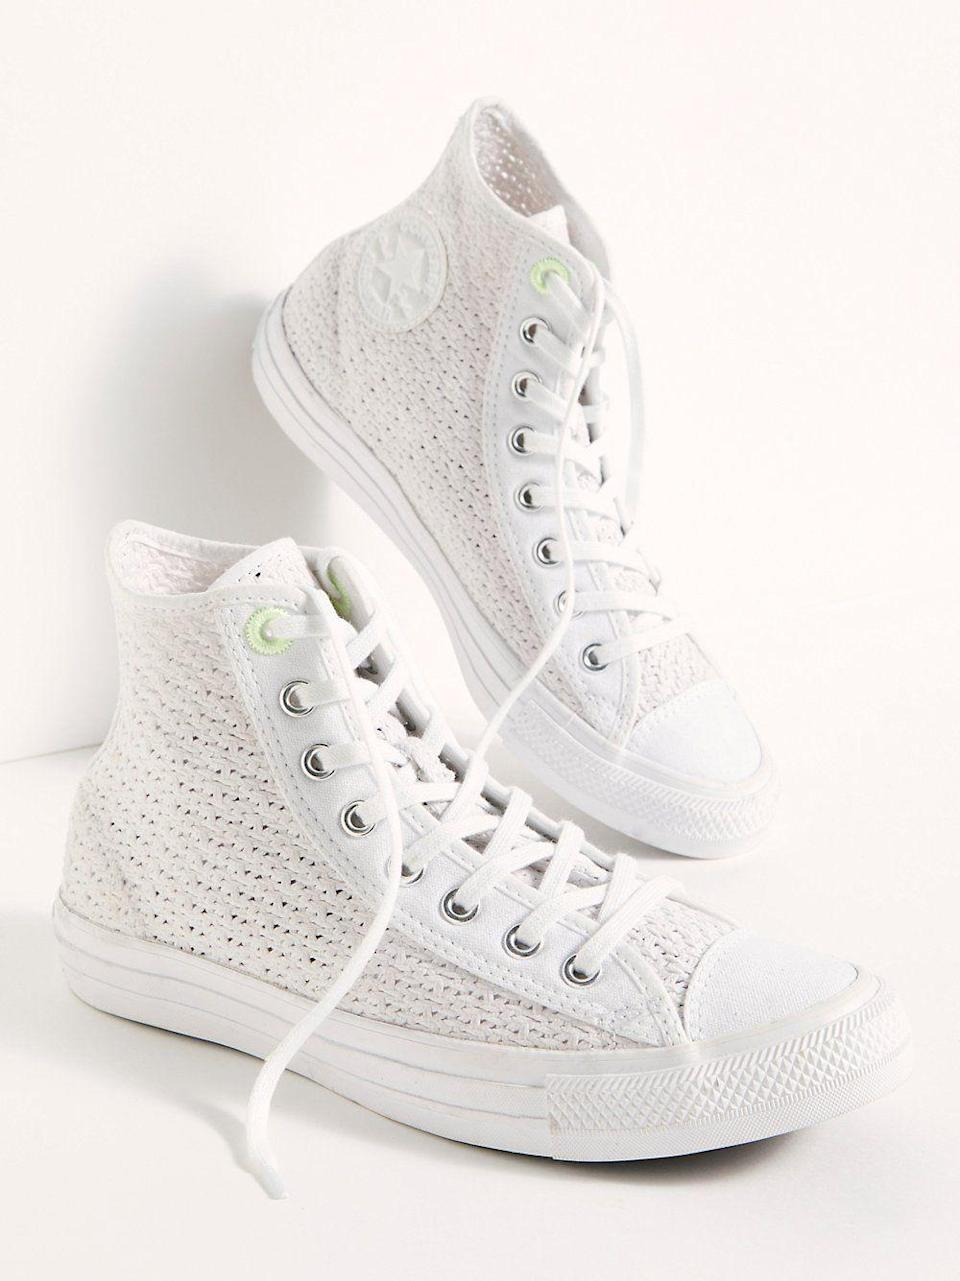 "<p><strong>Converse</strong></p><p>freepeople.com</p><p><strong>$65.00</strong></p><p><a href=""https://go.redirectingat.com?id=74968X1596630&url=https%3A%2F%2Fwww.freepeople.com%2Fshop%2Fchuck-taylor-all-star-crochet-hi-top-sneakers%2F&sref=https%3A%2F%2Fwww.seventeen.com%2Ffashion%2Ftrends%2Fg32826210%2Fclassic-white-sneakers%2F"" rel=""nofollow noopener"" target=""_blank"" data-ylk=""slk:Shop Now"" class=""link rapid-noclick-resp"">Shop Now</a></p><p>Behold: the cutest update to your plain white Chuck Taylor high-tops. </p>"